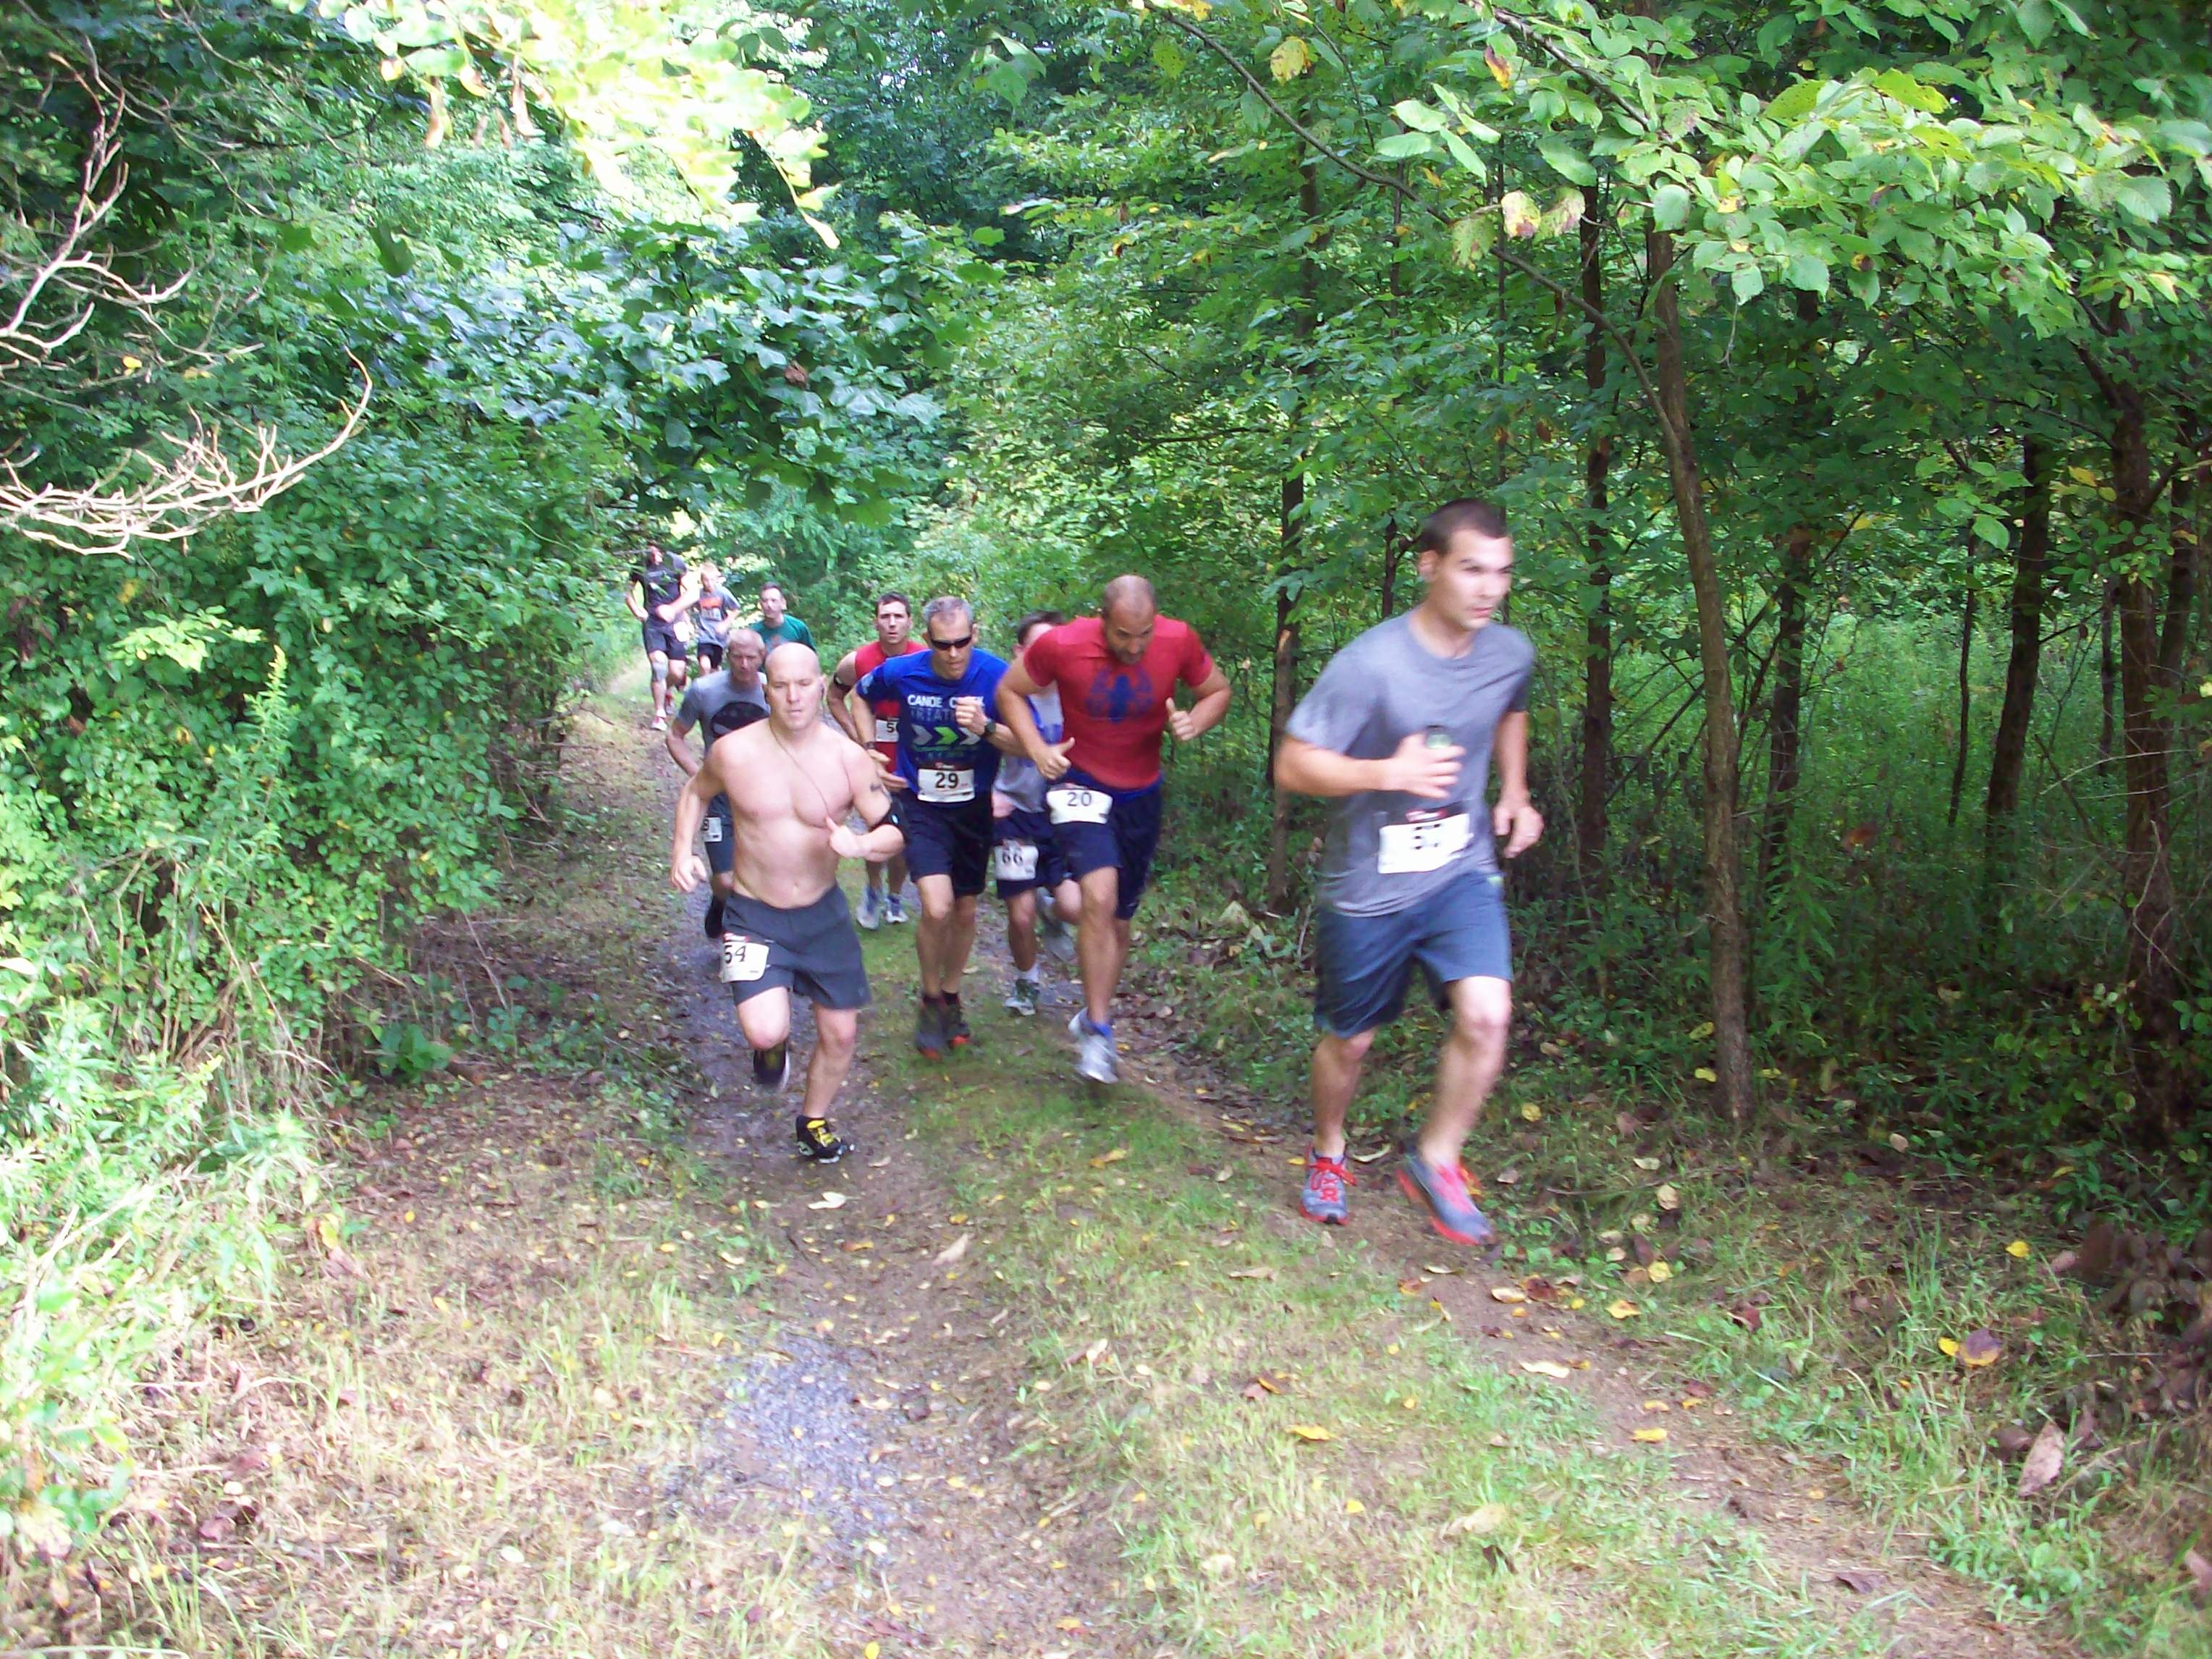 images.raceentry.com/infopages/nbcrc-5-k-pump-and-run-infopages-1756.jpg